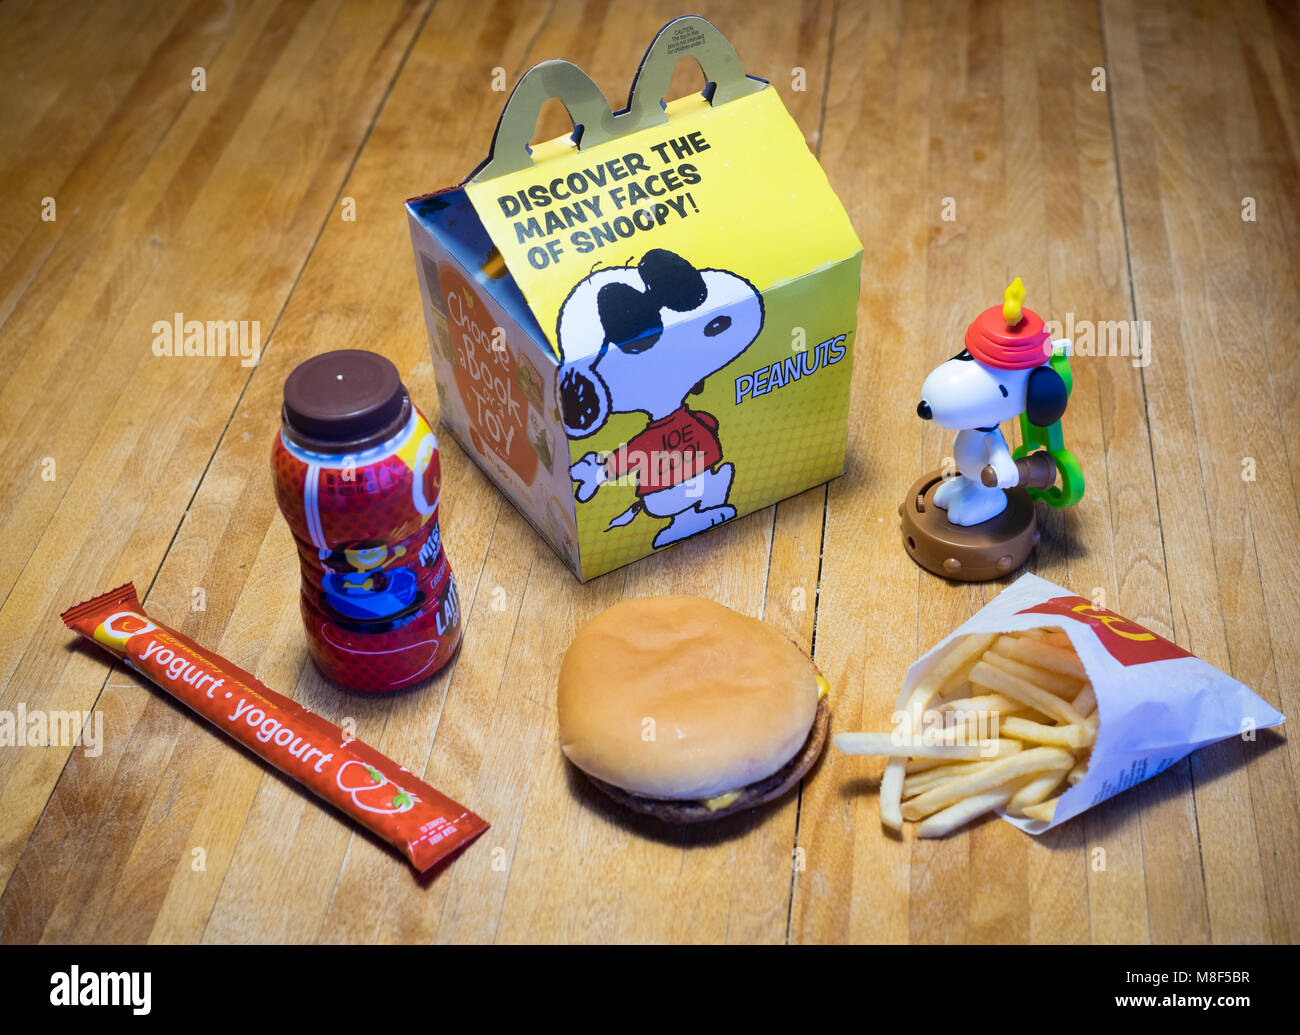 A McDonald's Happy Meal with a cheeseburger, French fries, chocolate milk, yogurt tube, and Snoopy toy. - Stock Image